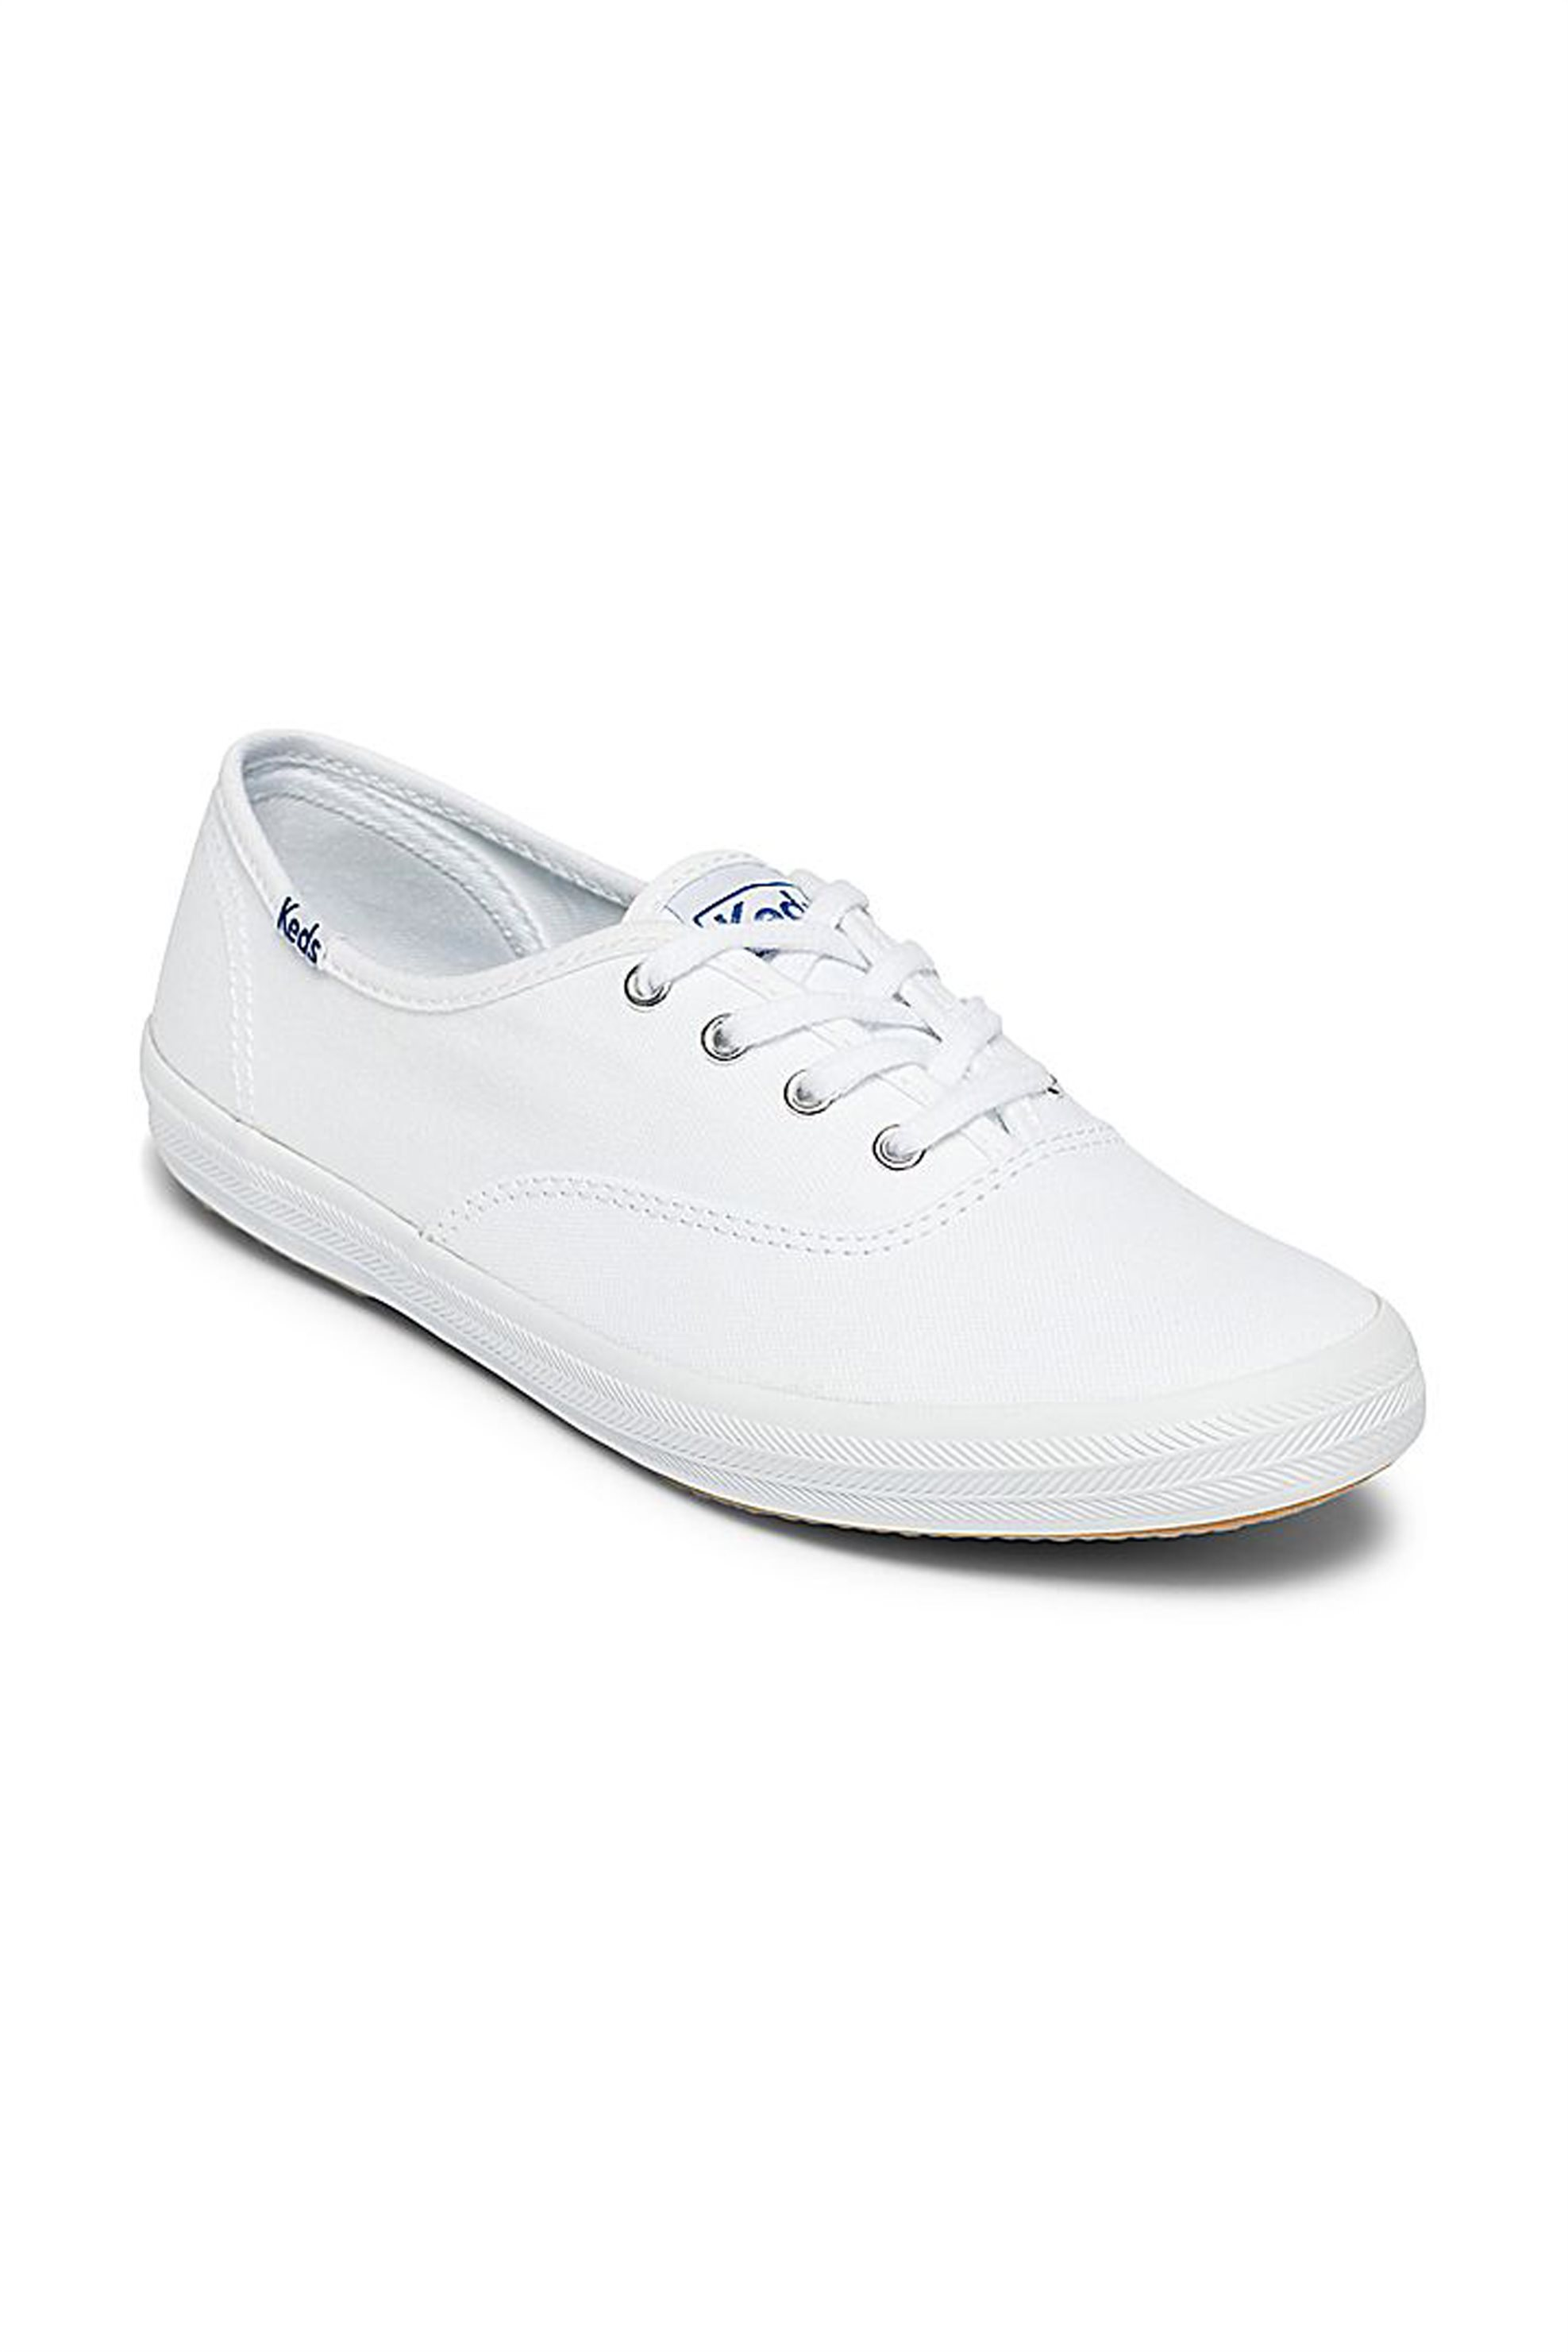 Notos Γυναικεία sneaker Champion core canvas Keds – WF34000 – Λευκό 3ab4ebde549